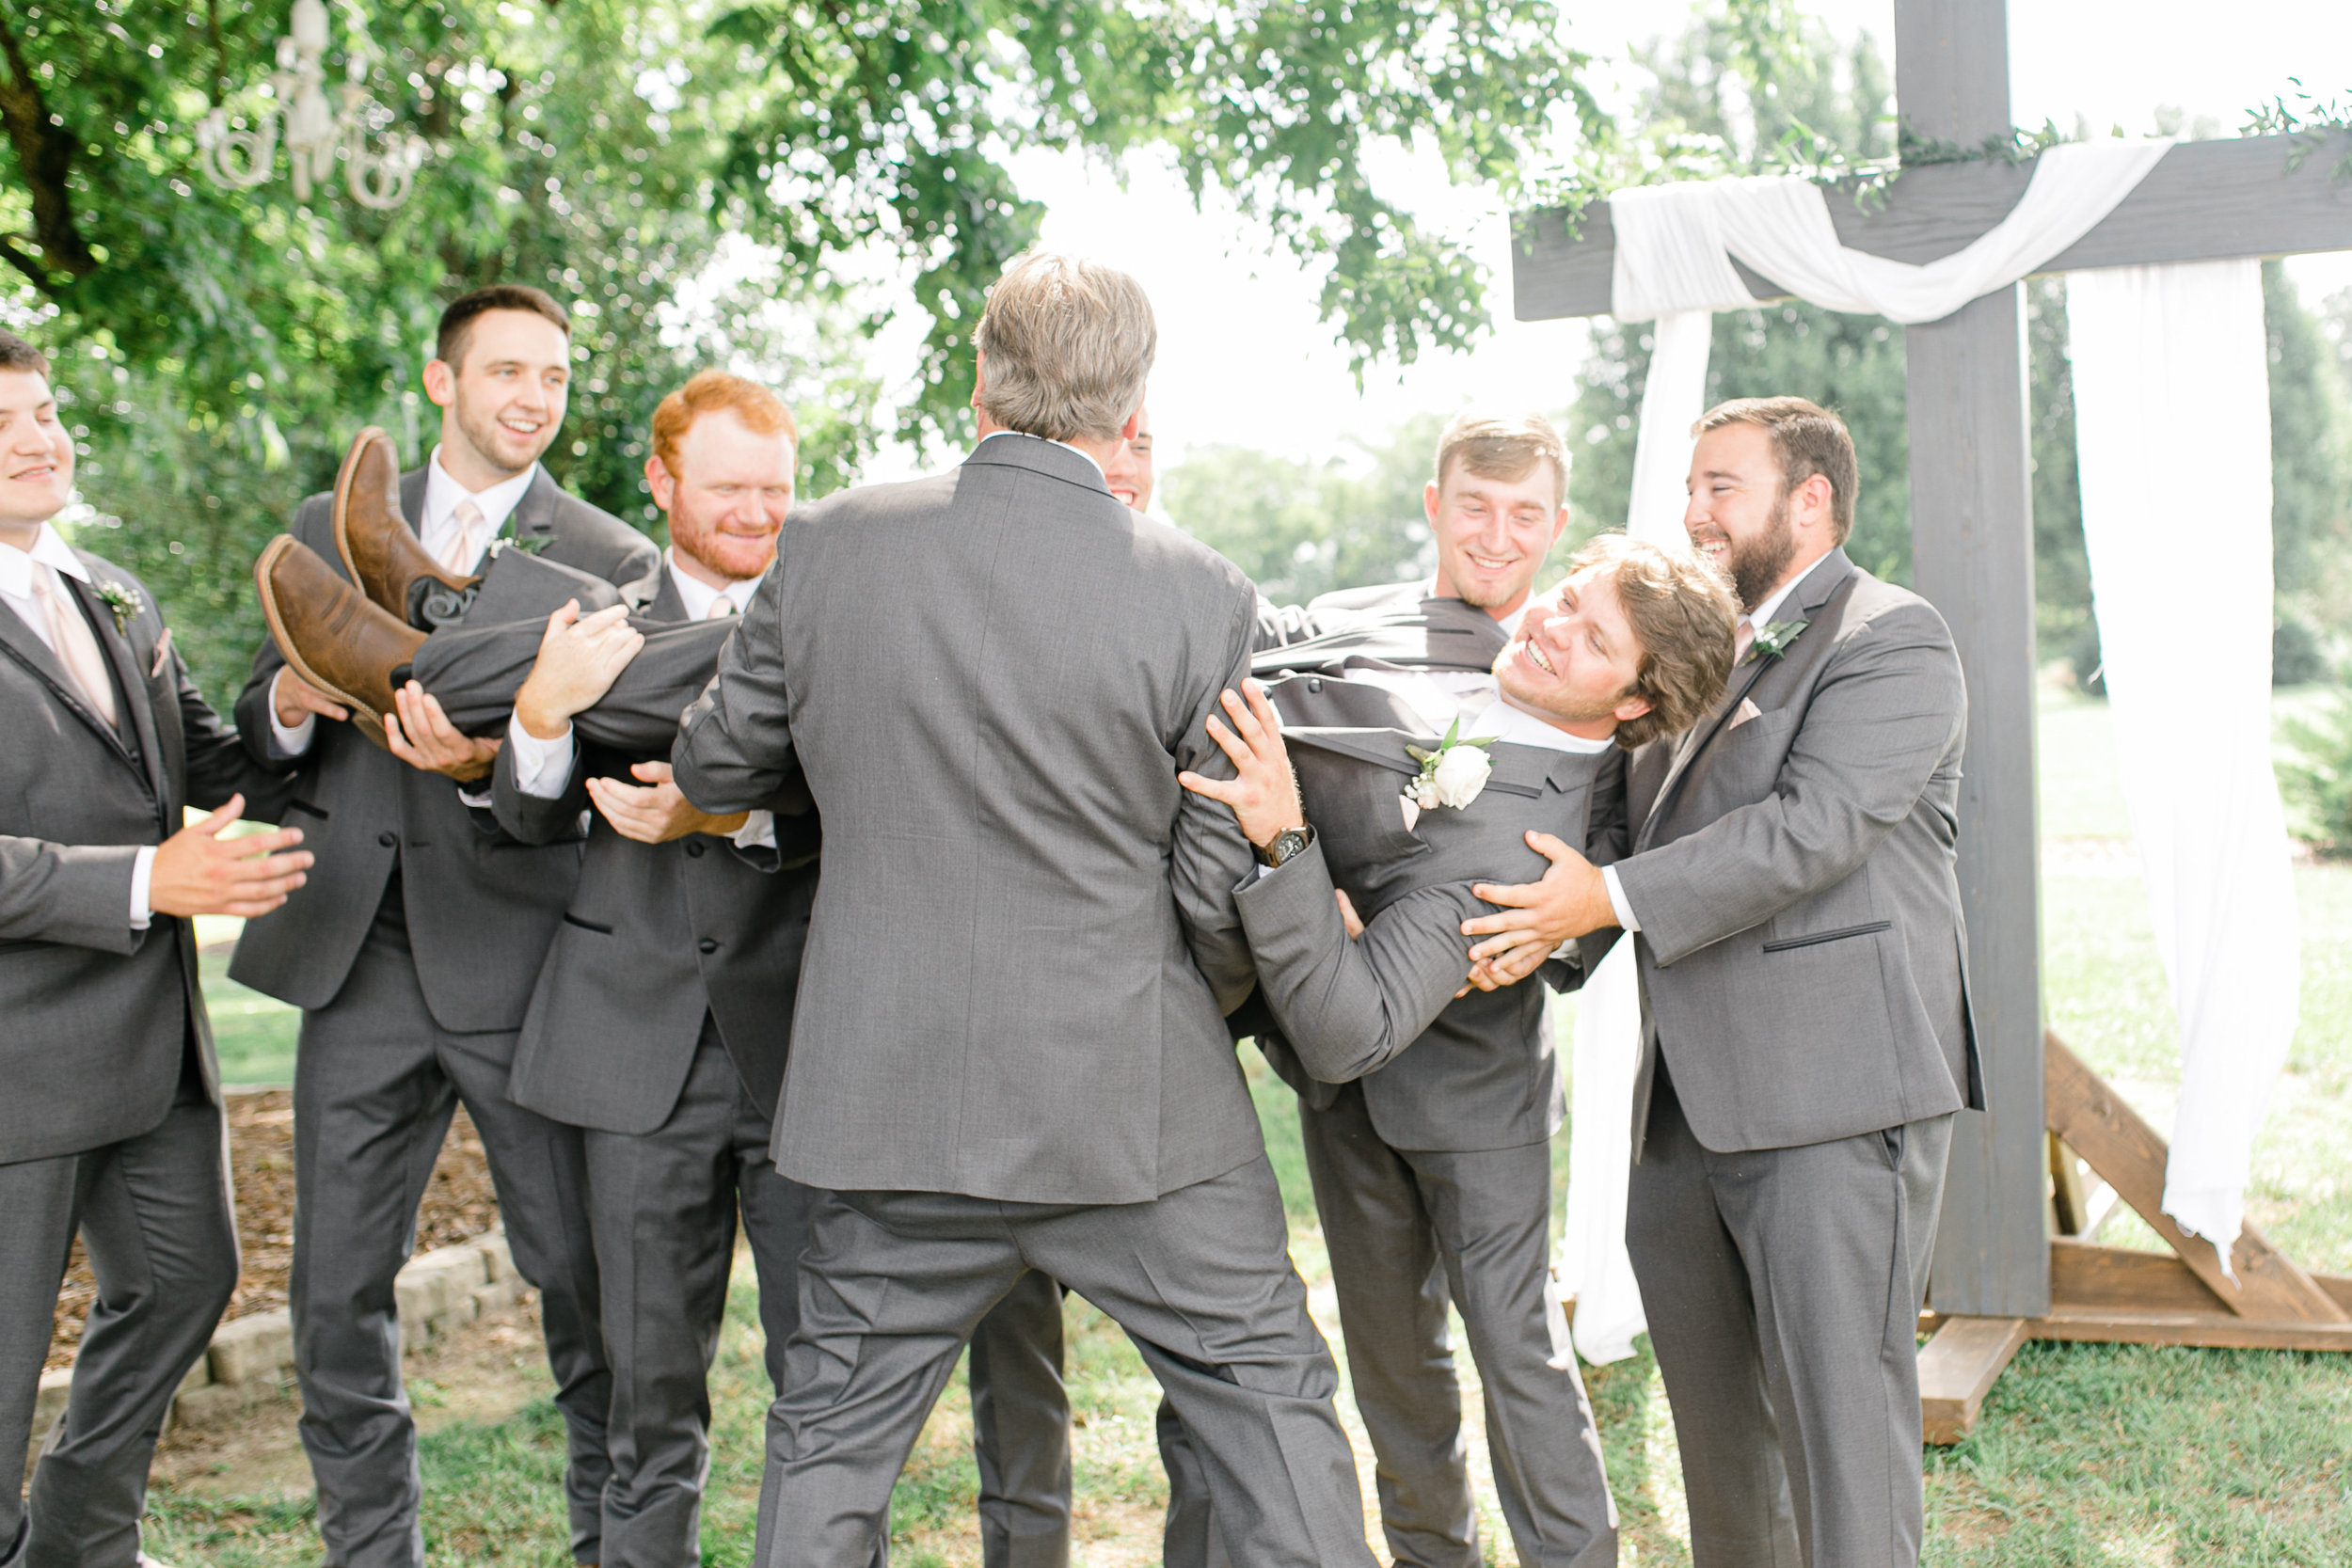 Anna Laura Connor-The Groomsmen-0033.jpg